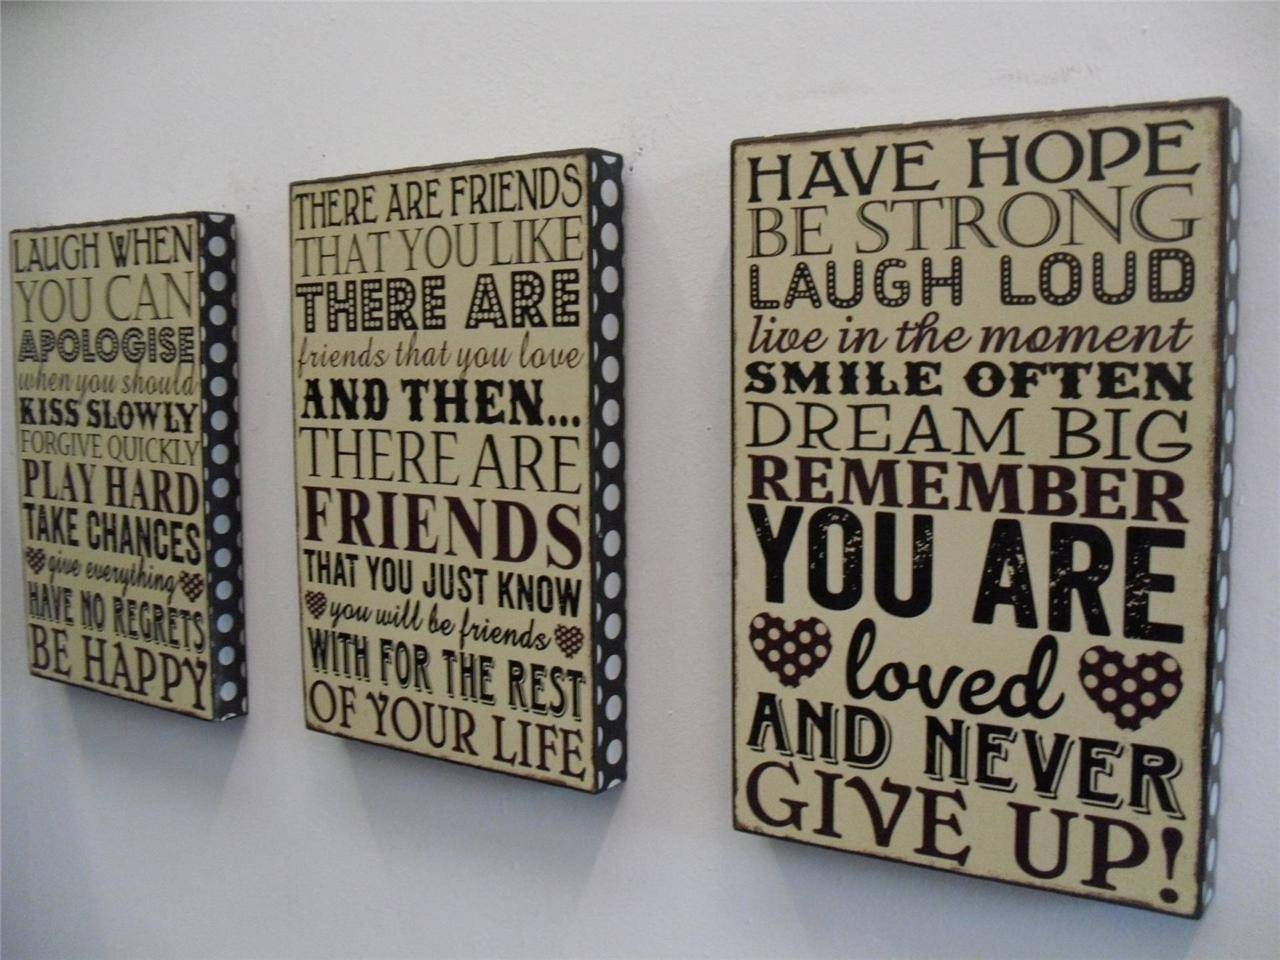 Wall Art Design Ideas: Personalized Word Plaques Wall Art Themes Within Latest Wooden Word Wall Art (View 8 of 30)